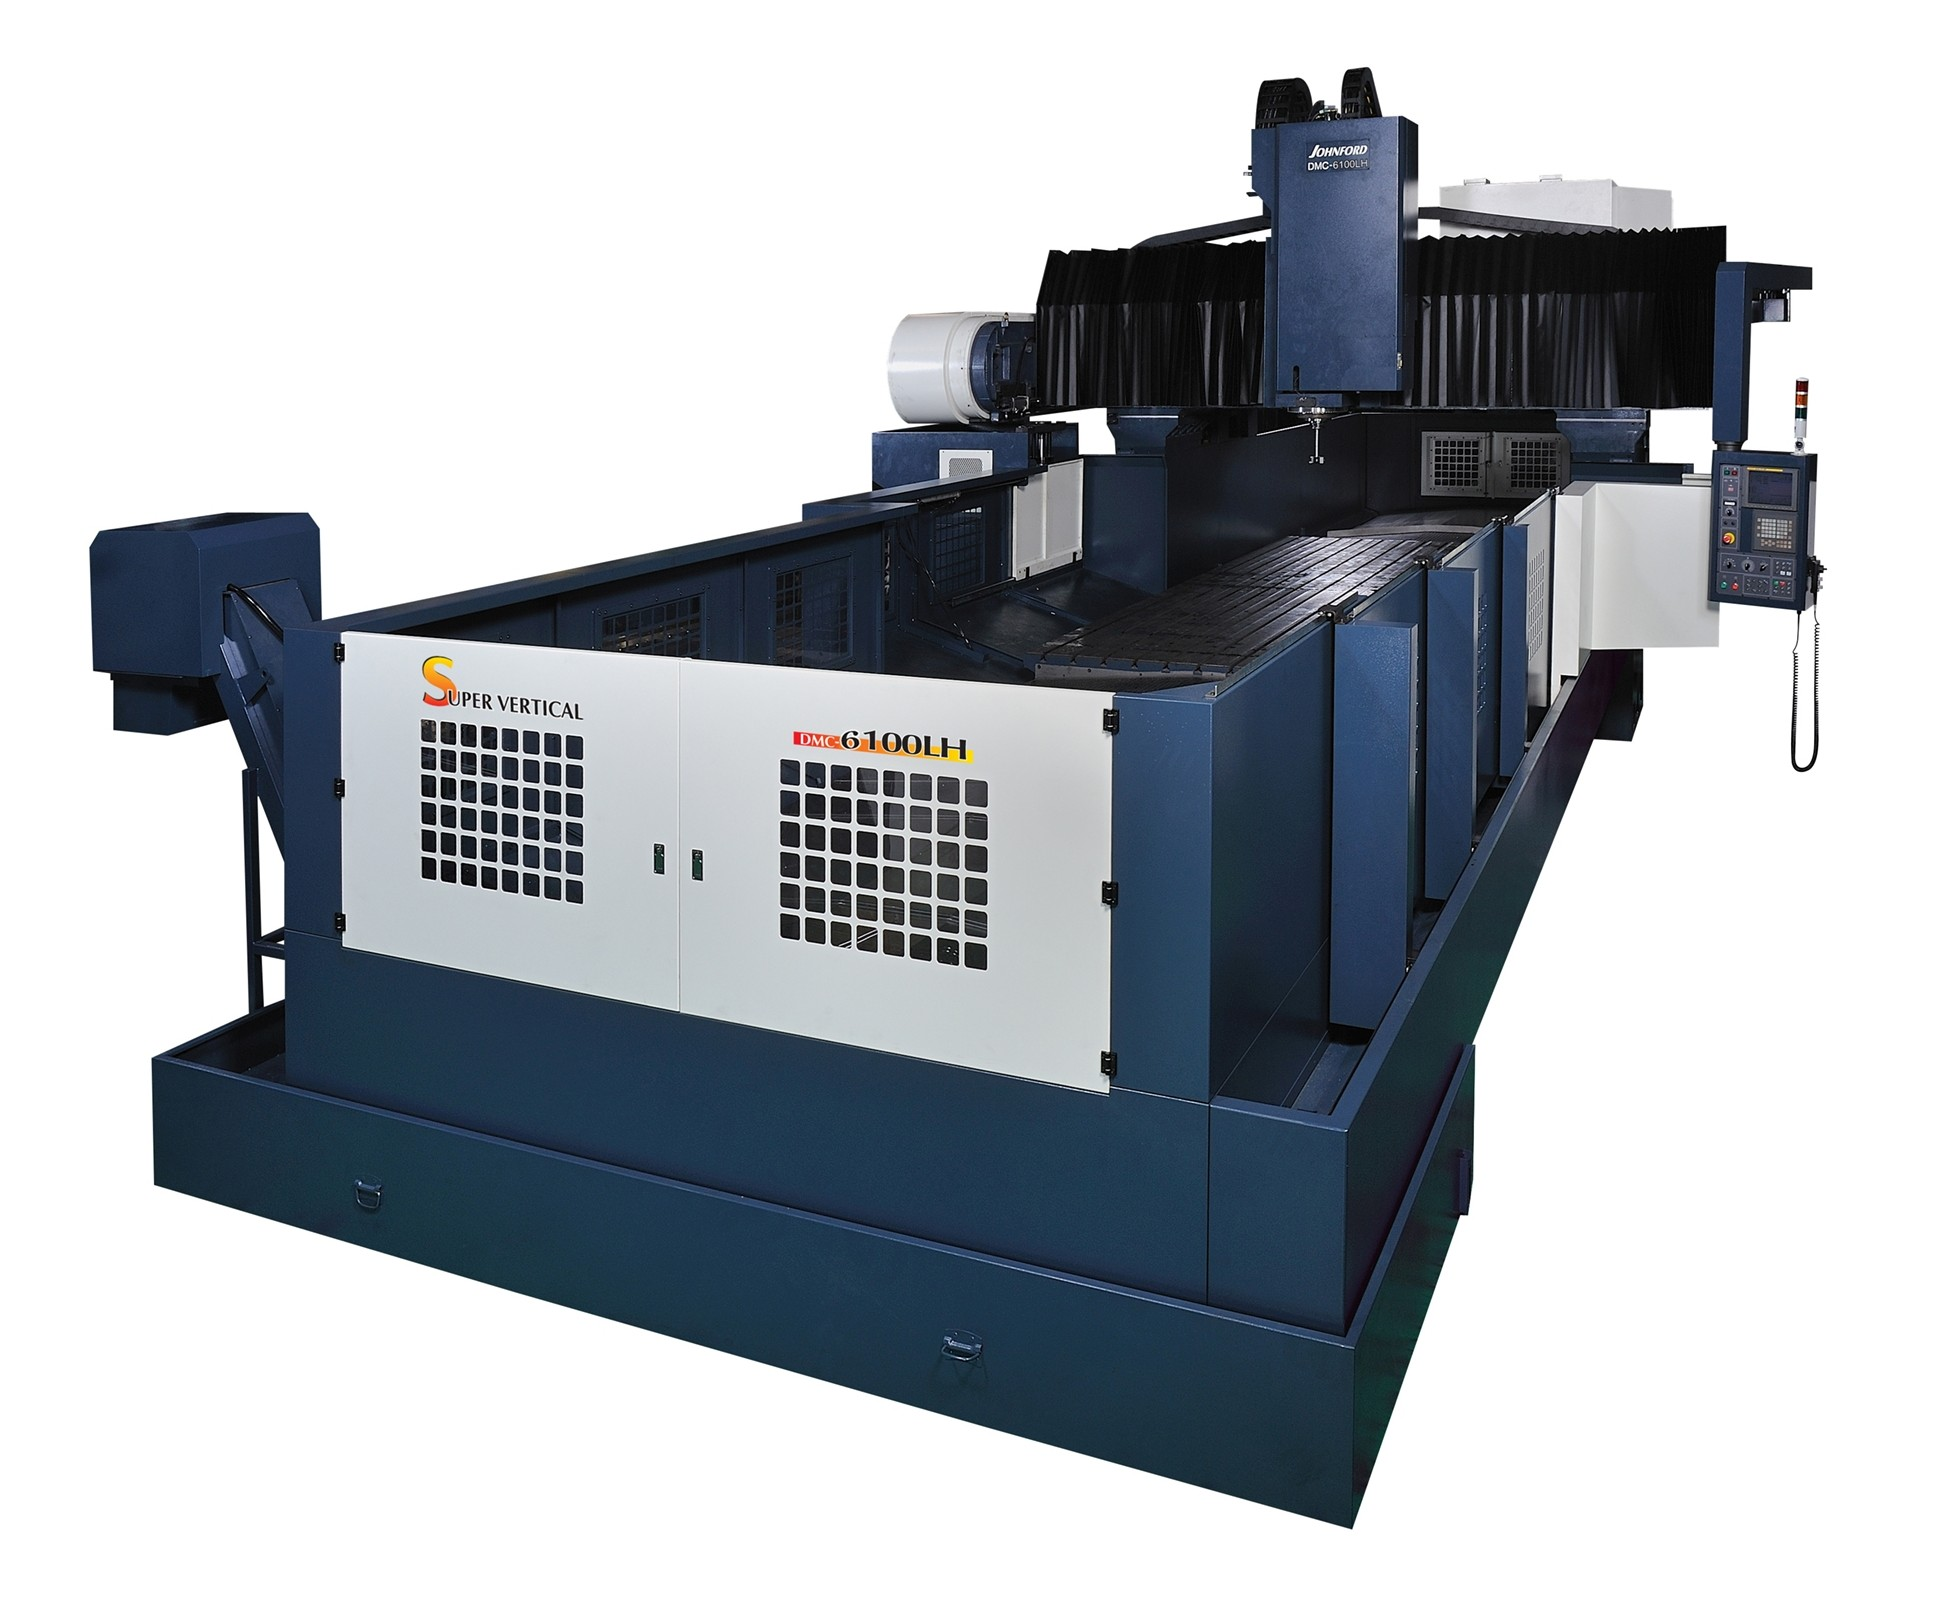 Absolute Machine Tools will display its Johnford DMC LH series of table bridge mills at IMTS 2018.